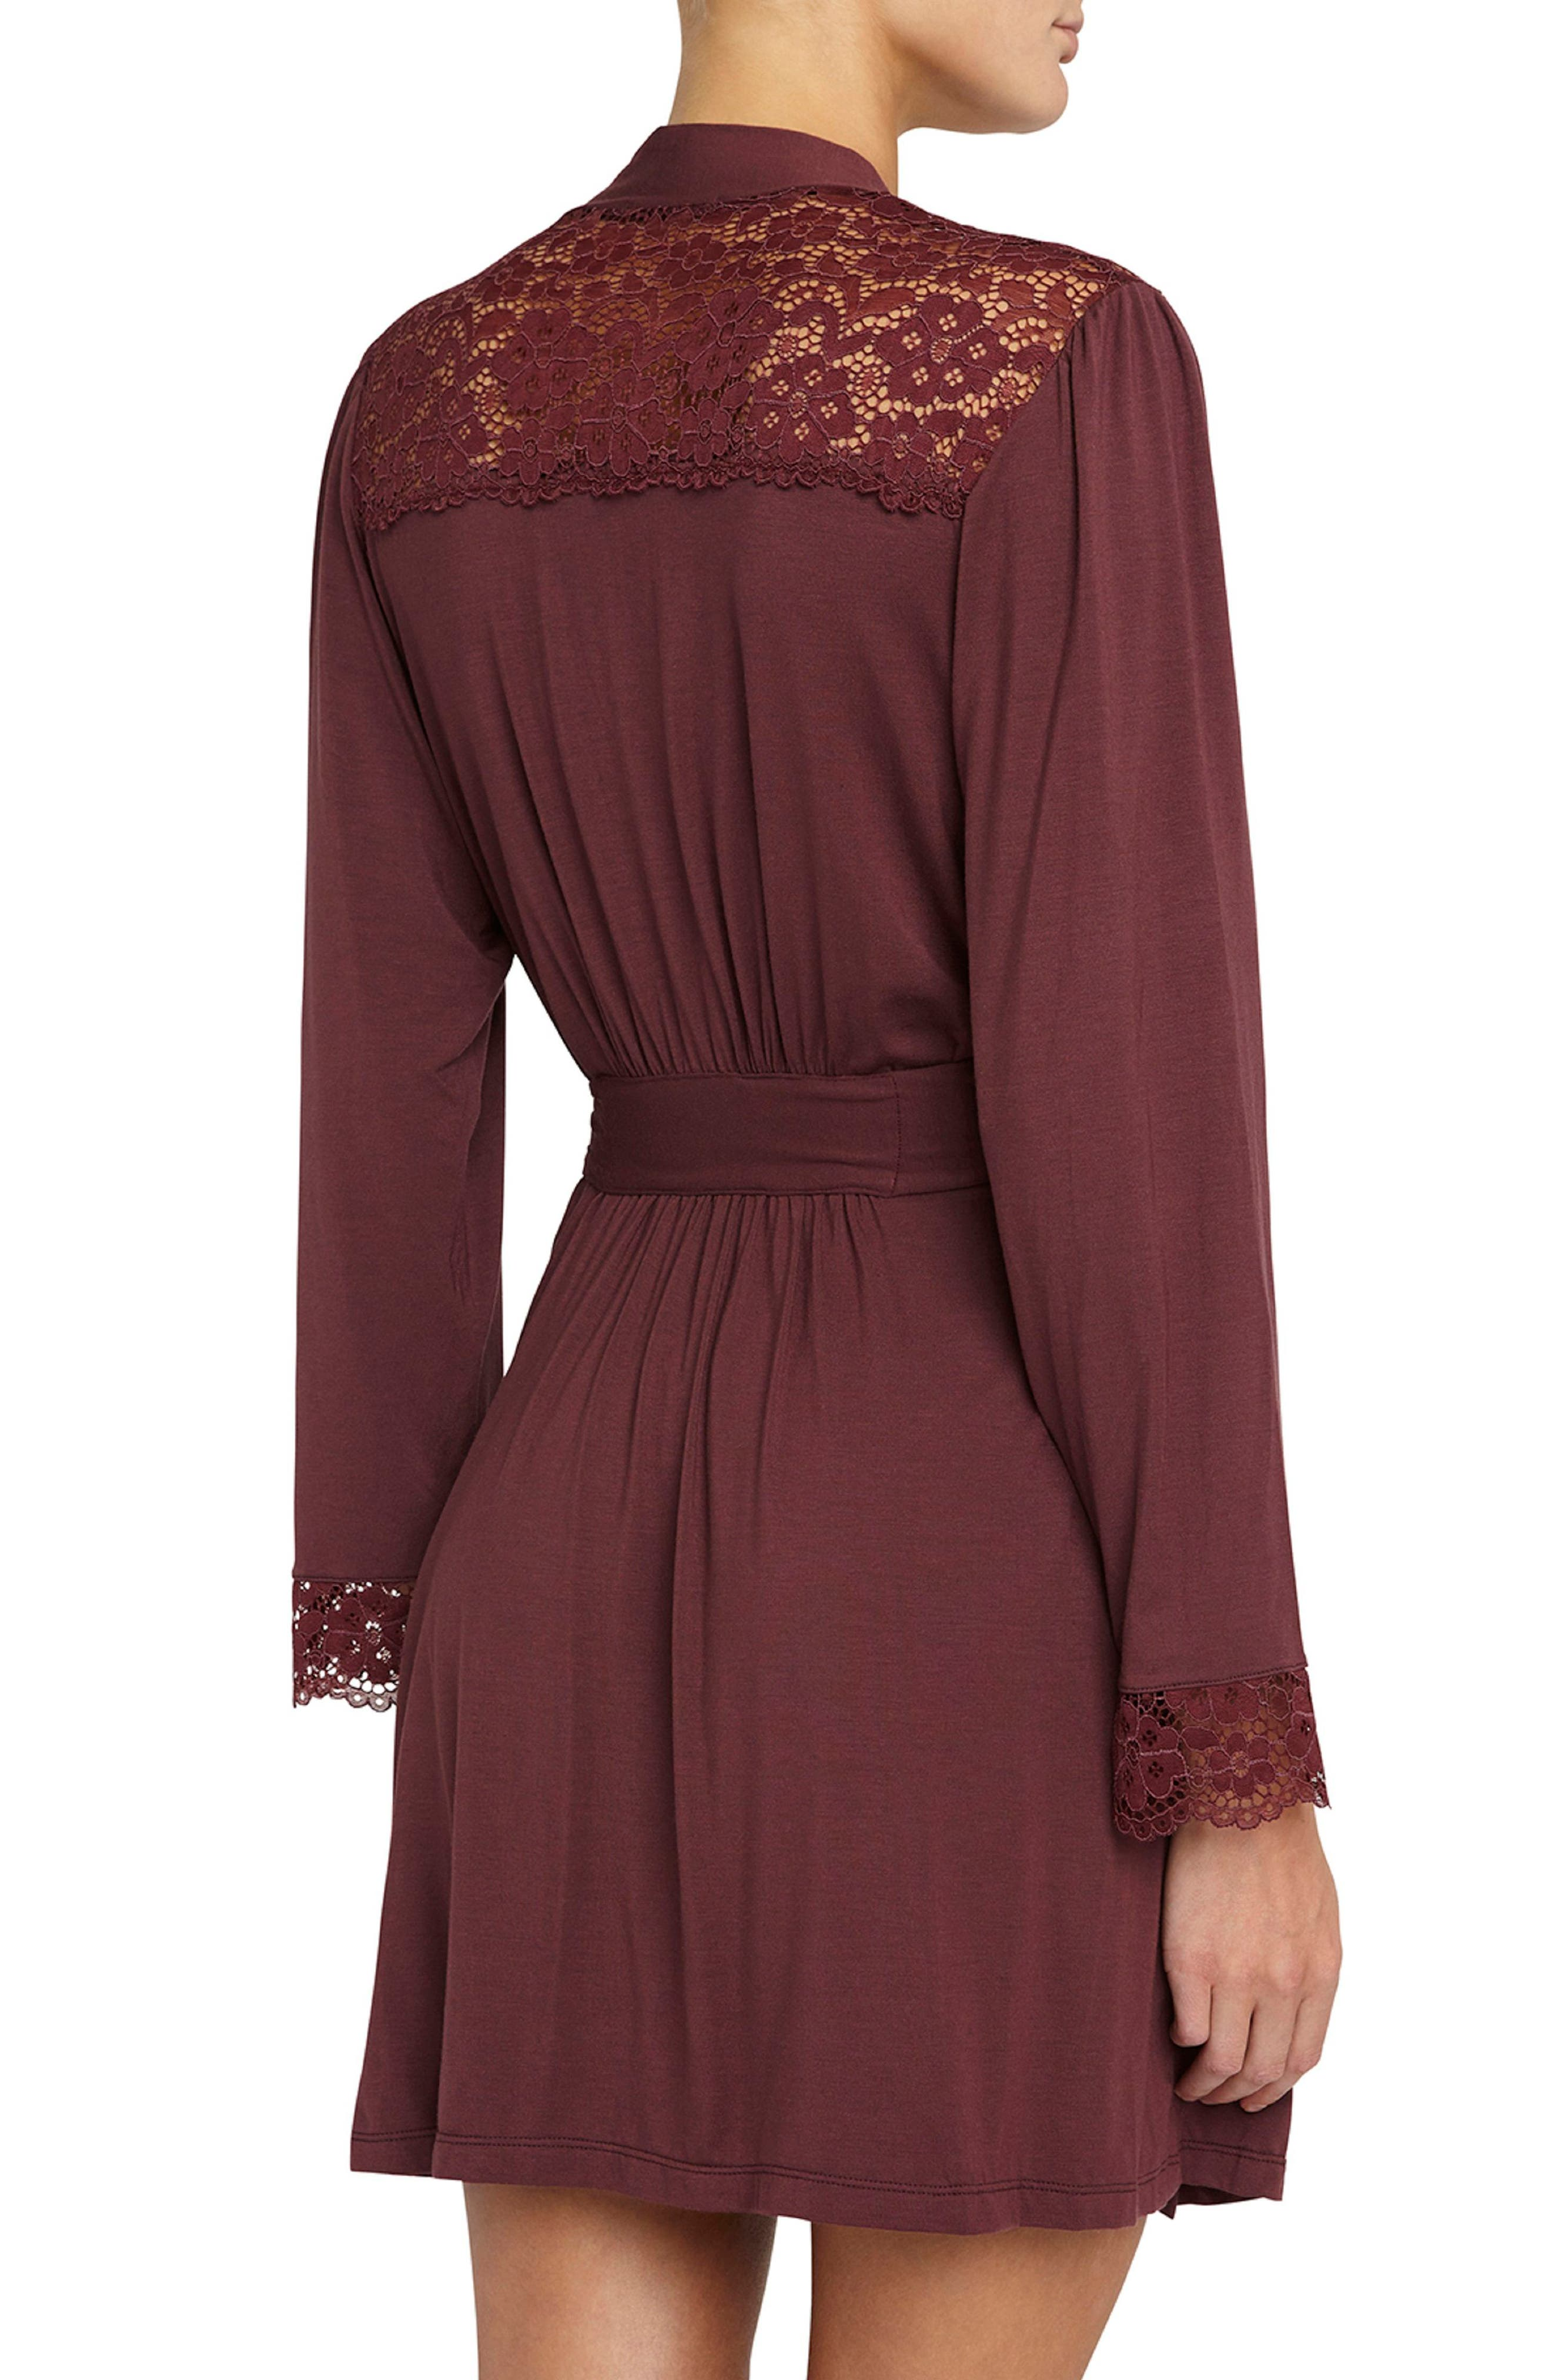 Vineland Wine Lila Short Robe,                             Alternate thumbnail 2, color,                             Vineyard Wine